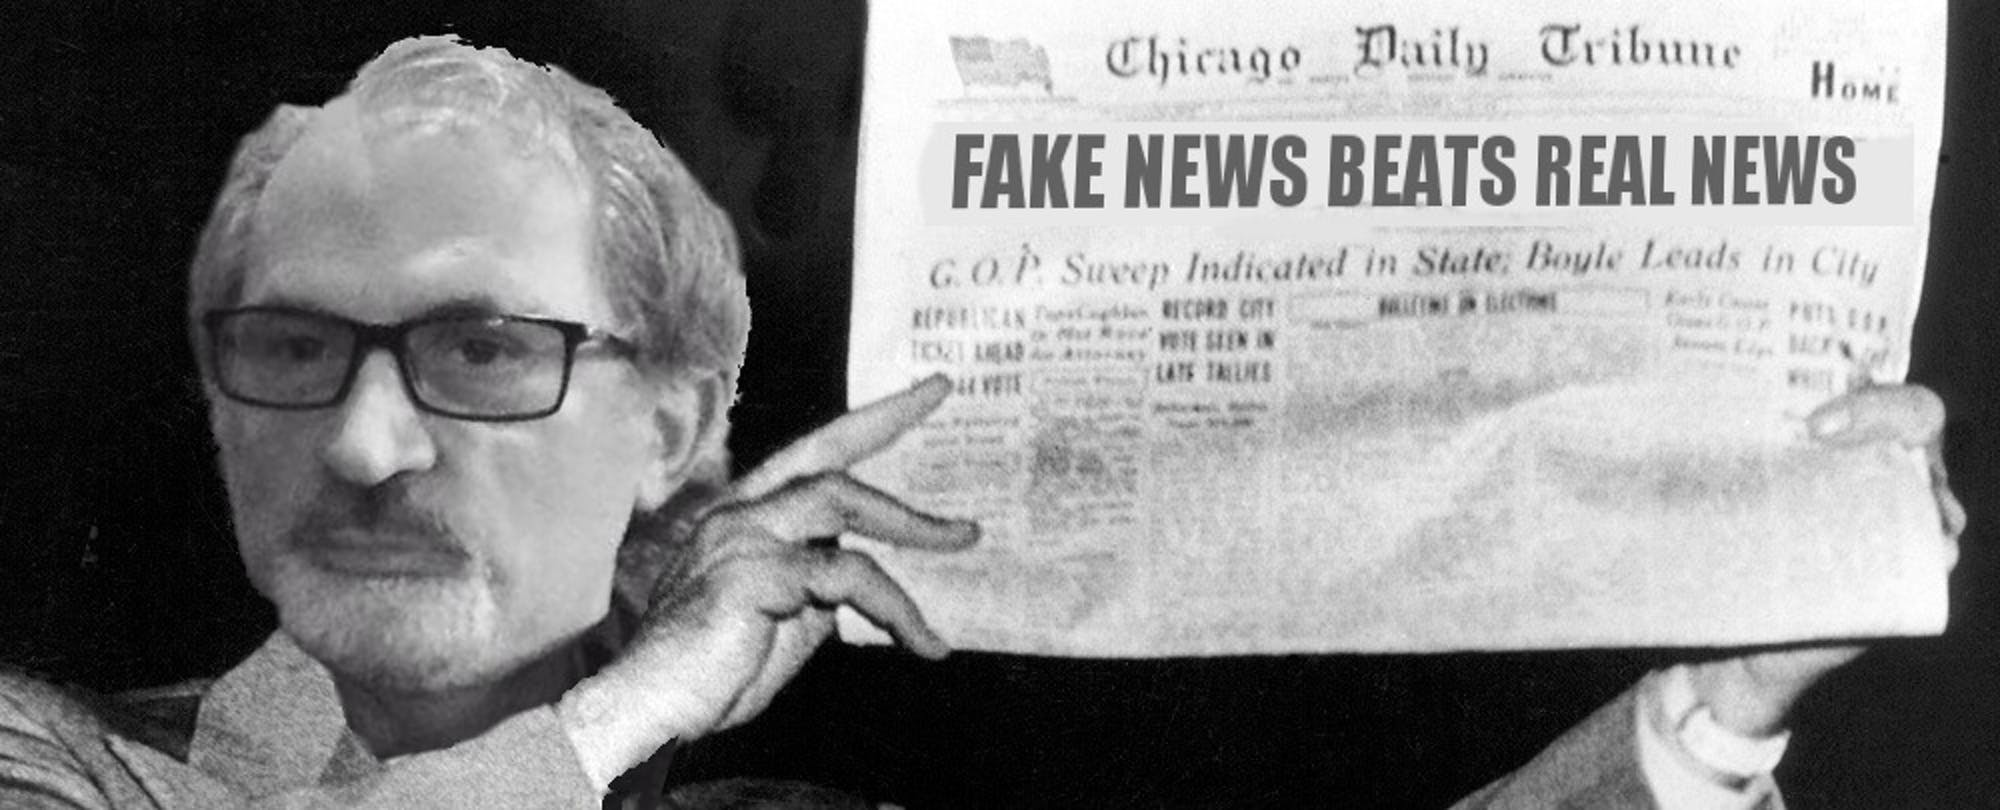 Teaching 'Truthiness': Professors Offer Course On How to Write Fake News